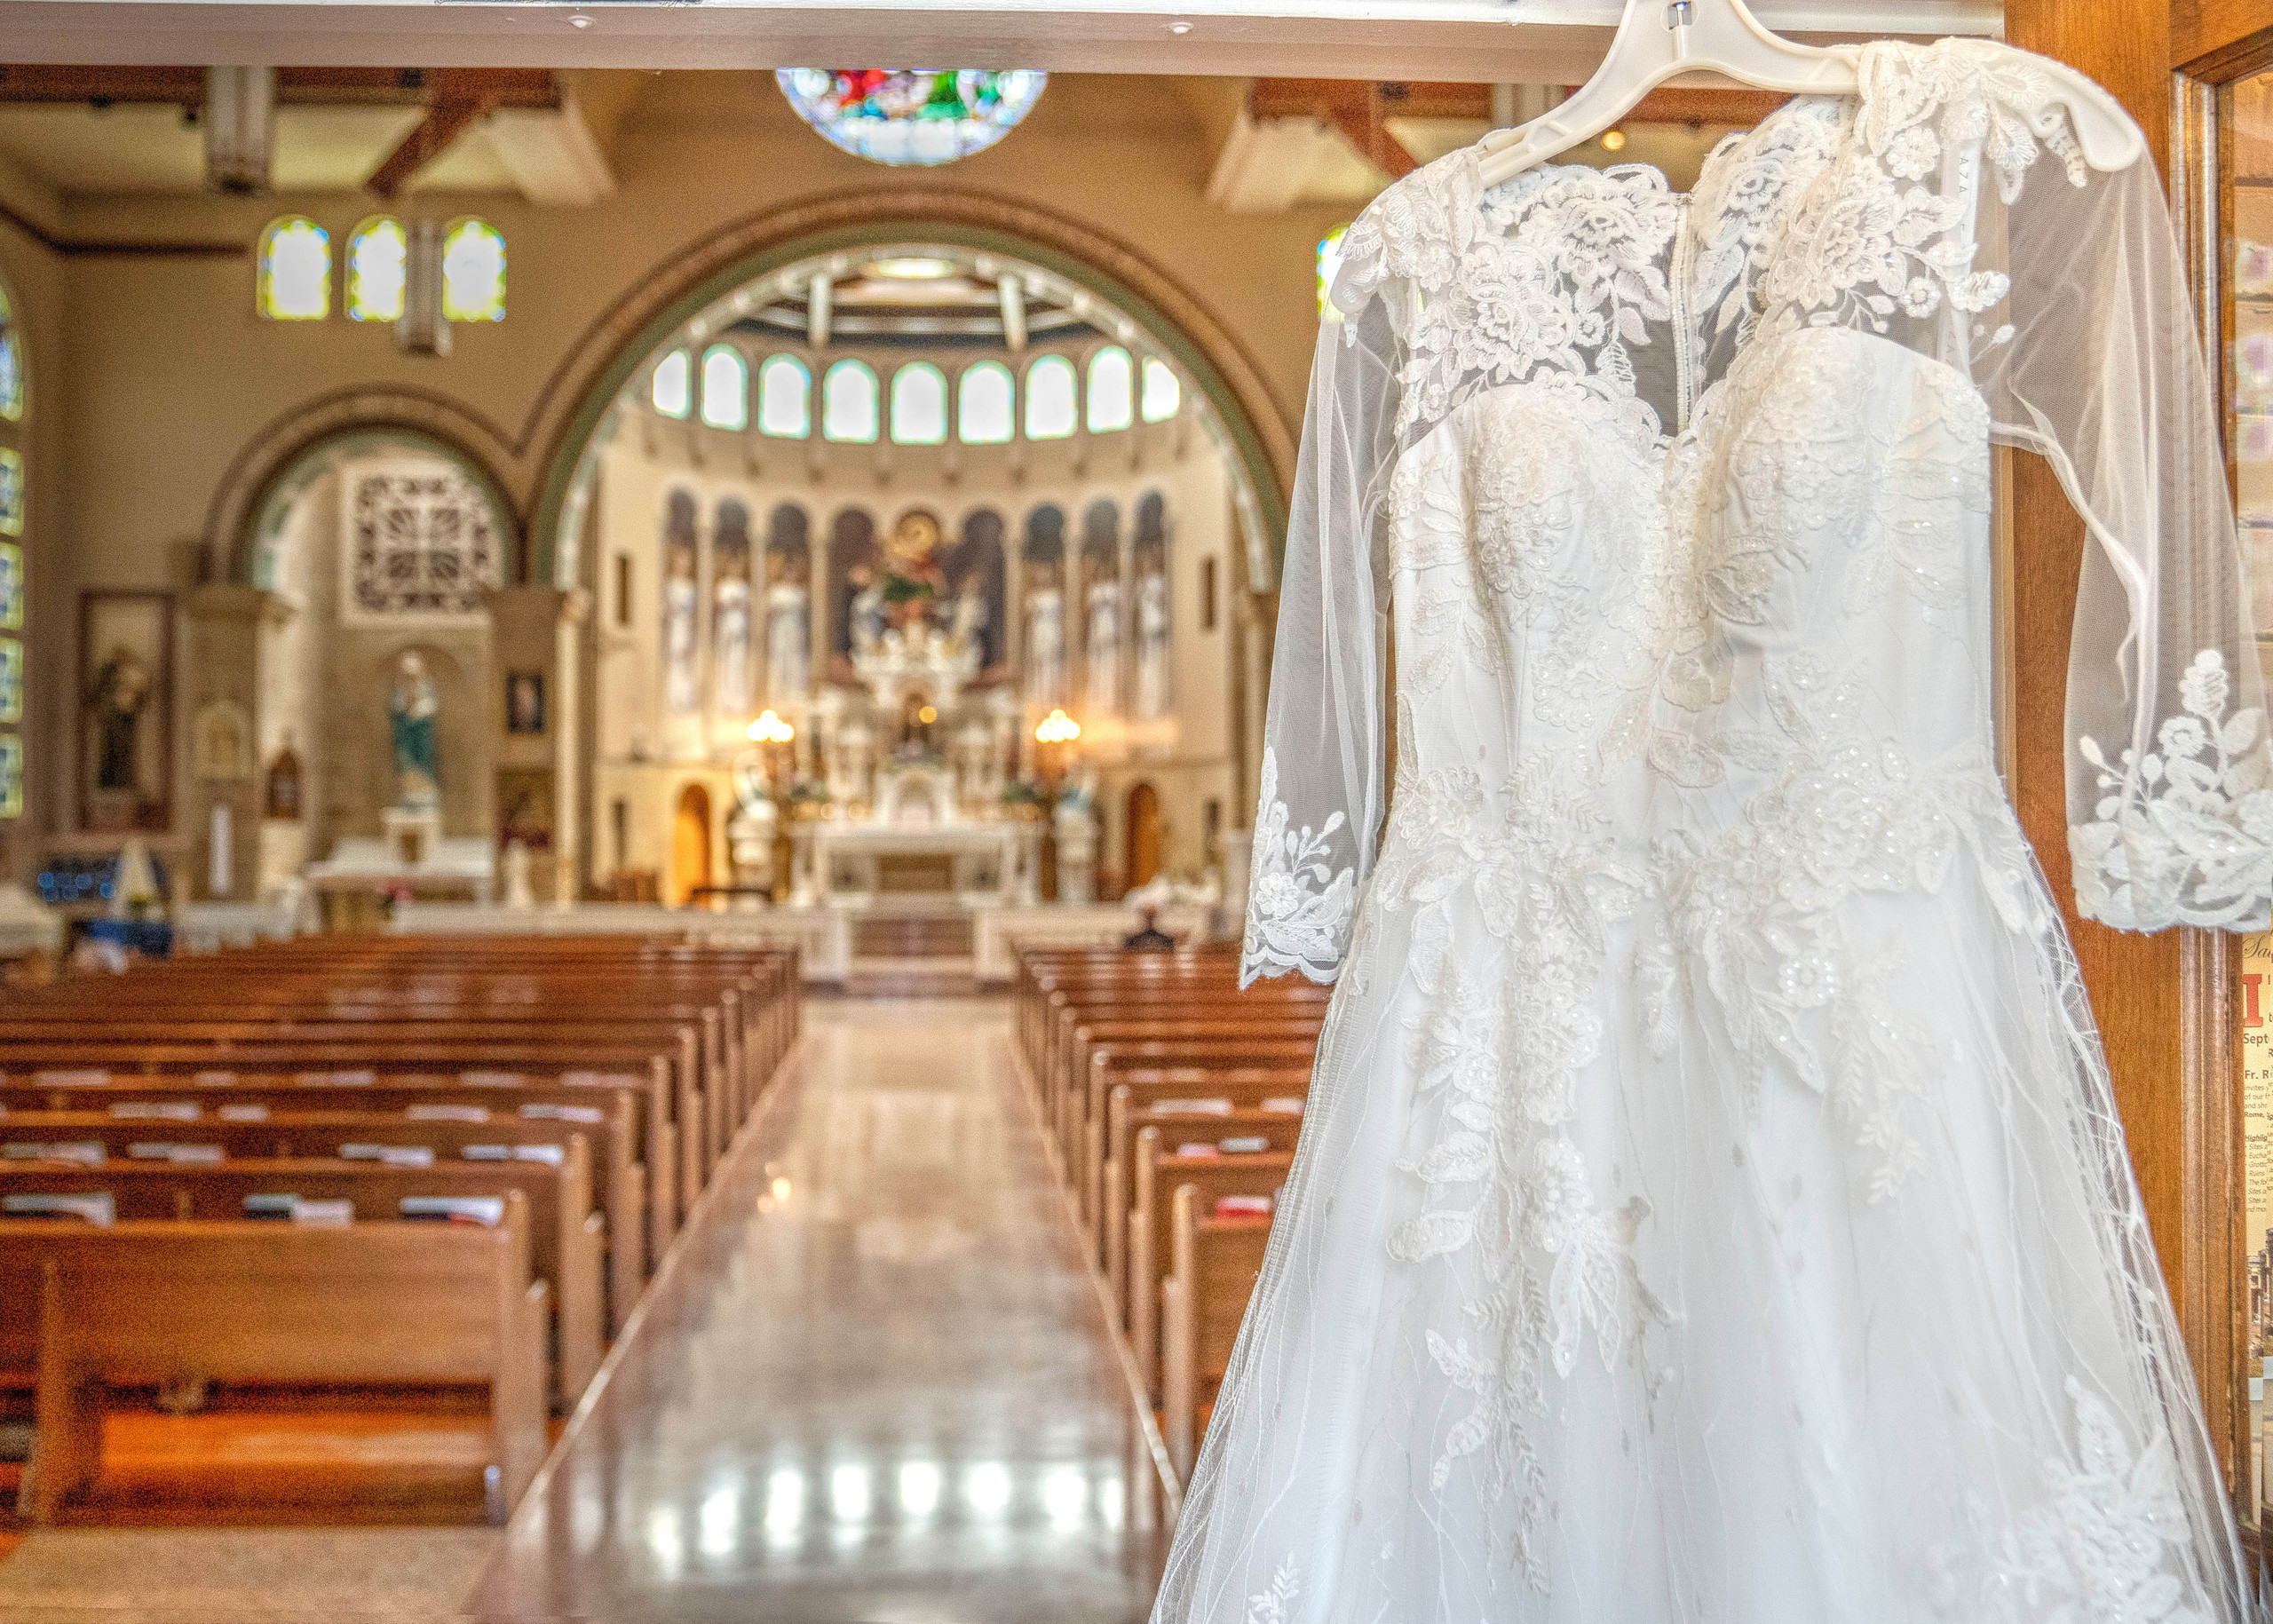 Wedding dress hanging in front of church - Indianapolis Wedding Photographer, Emma Males